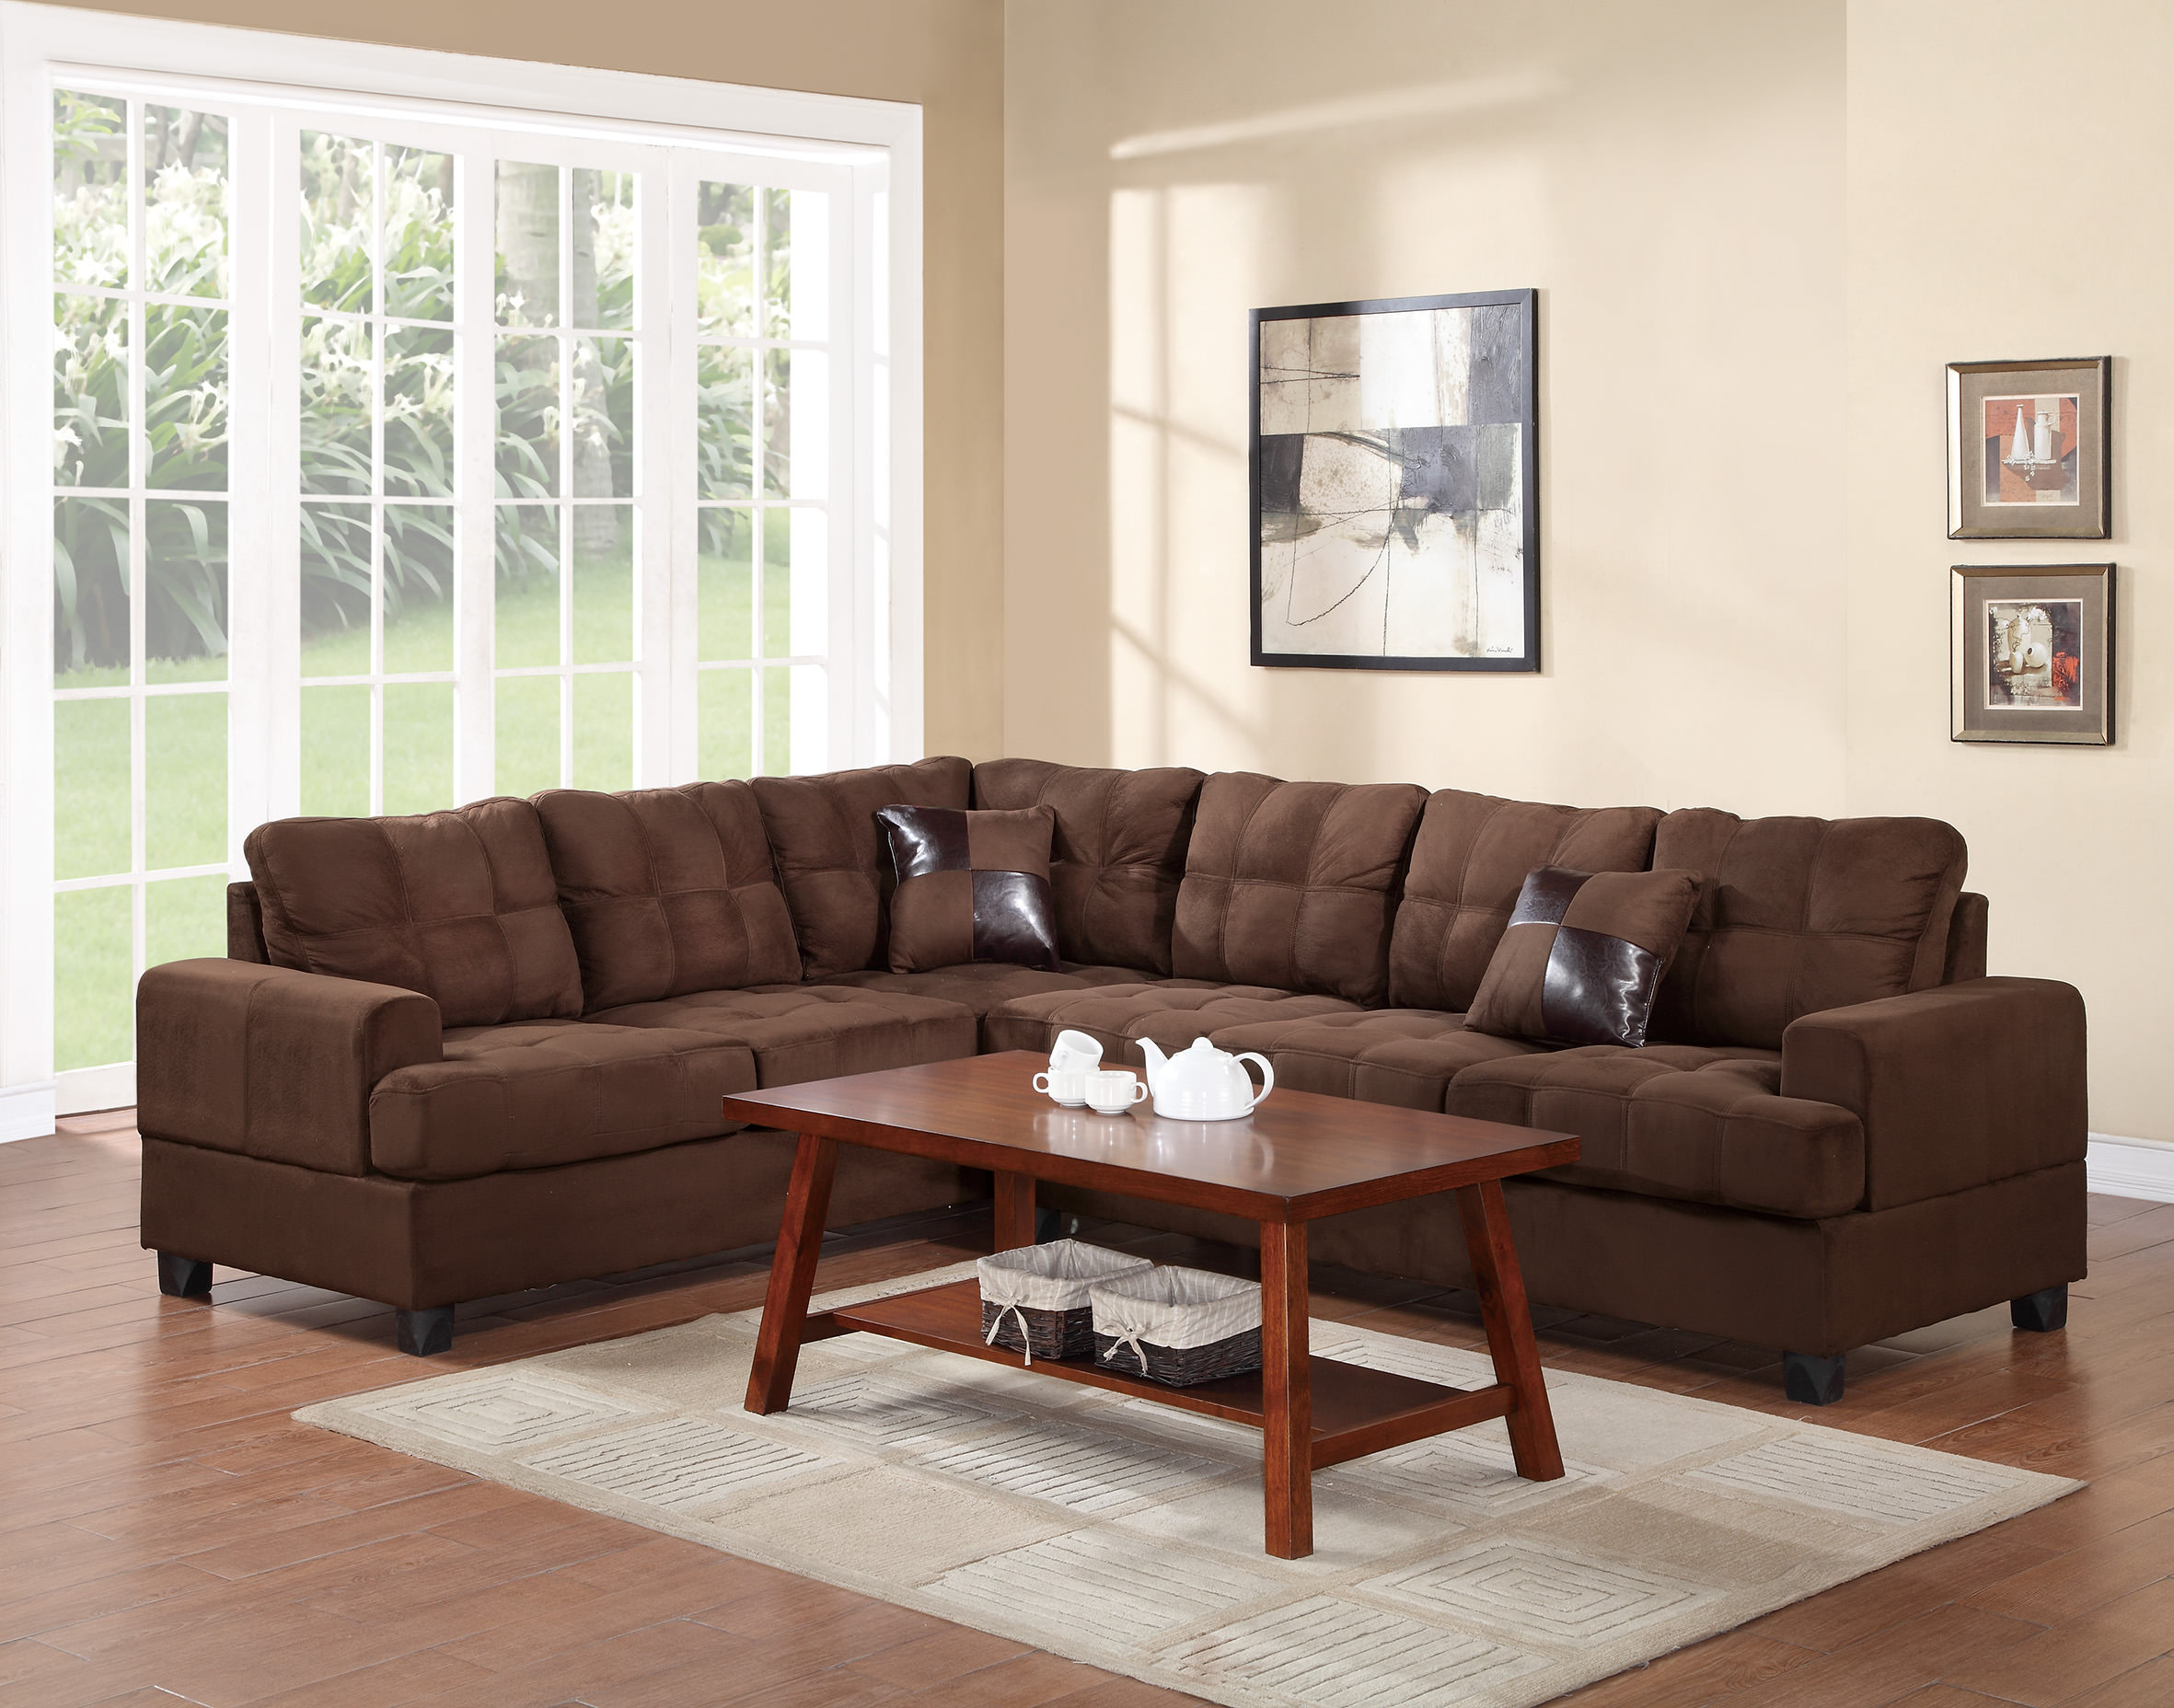 corey chocolate brown sectional sofa australian made beds sydney f7627 by poundex